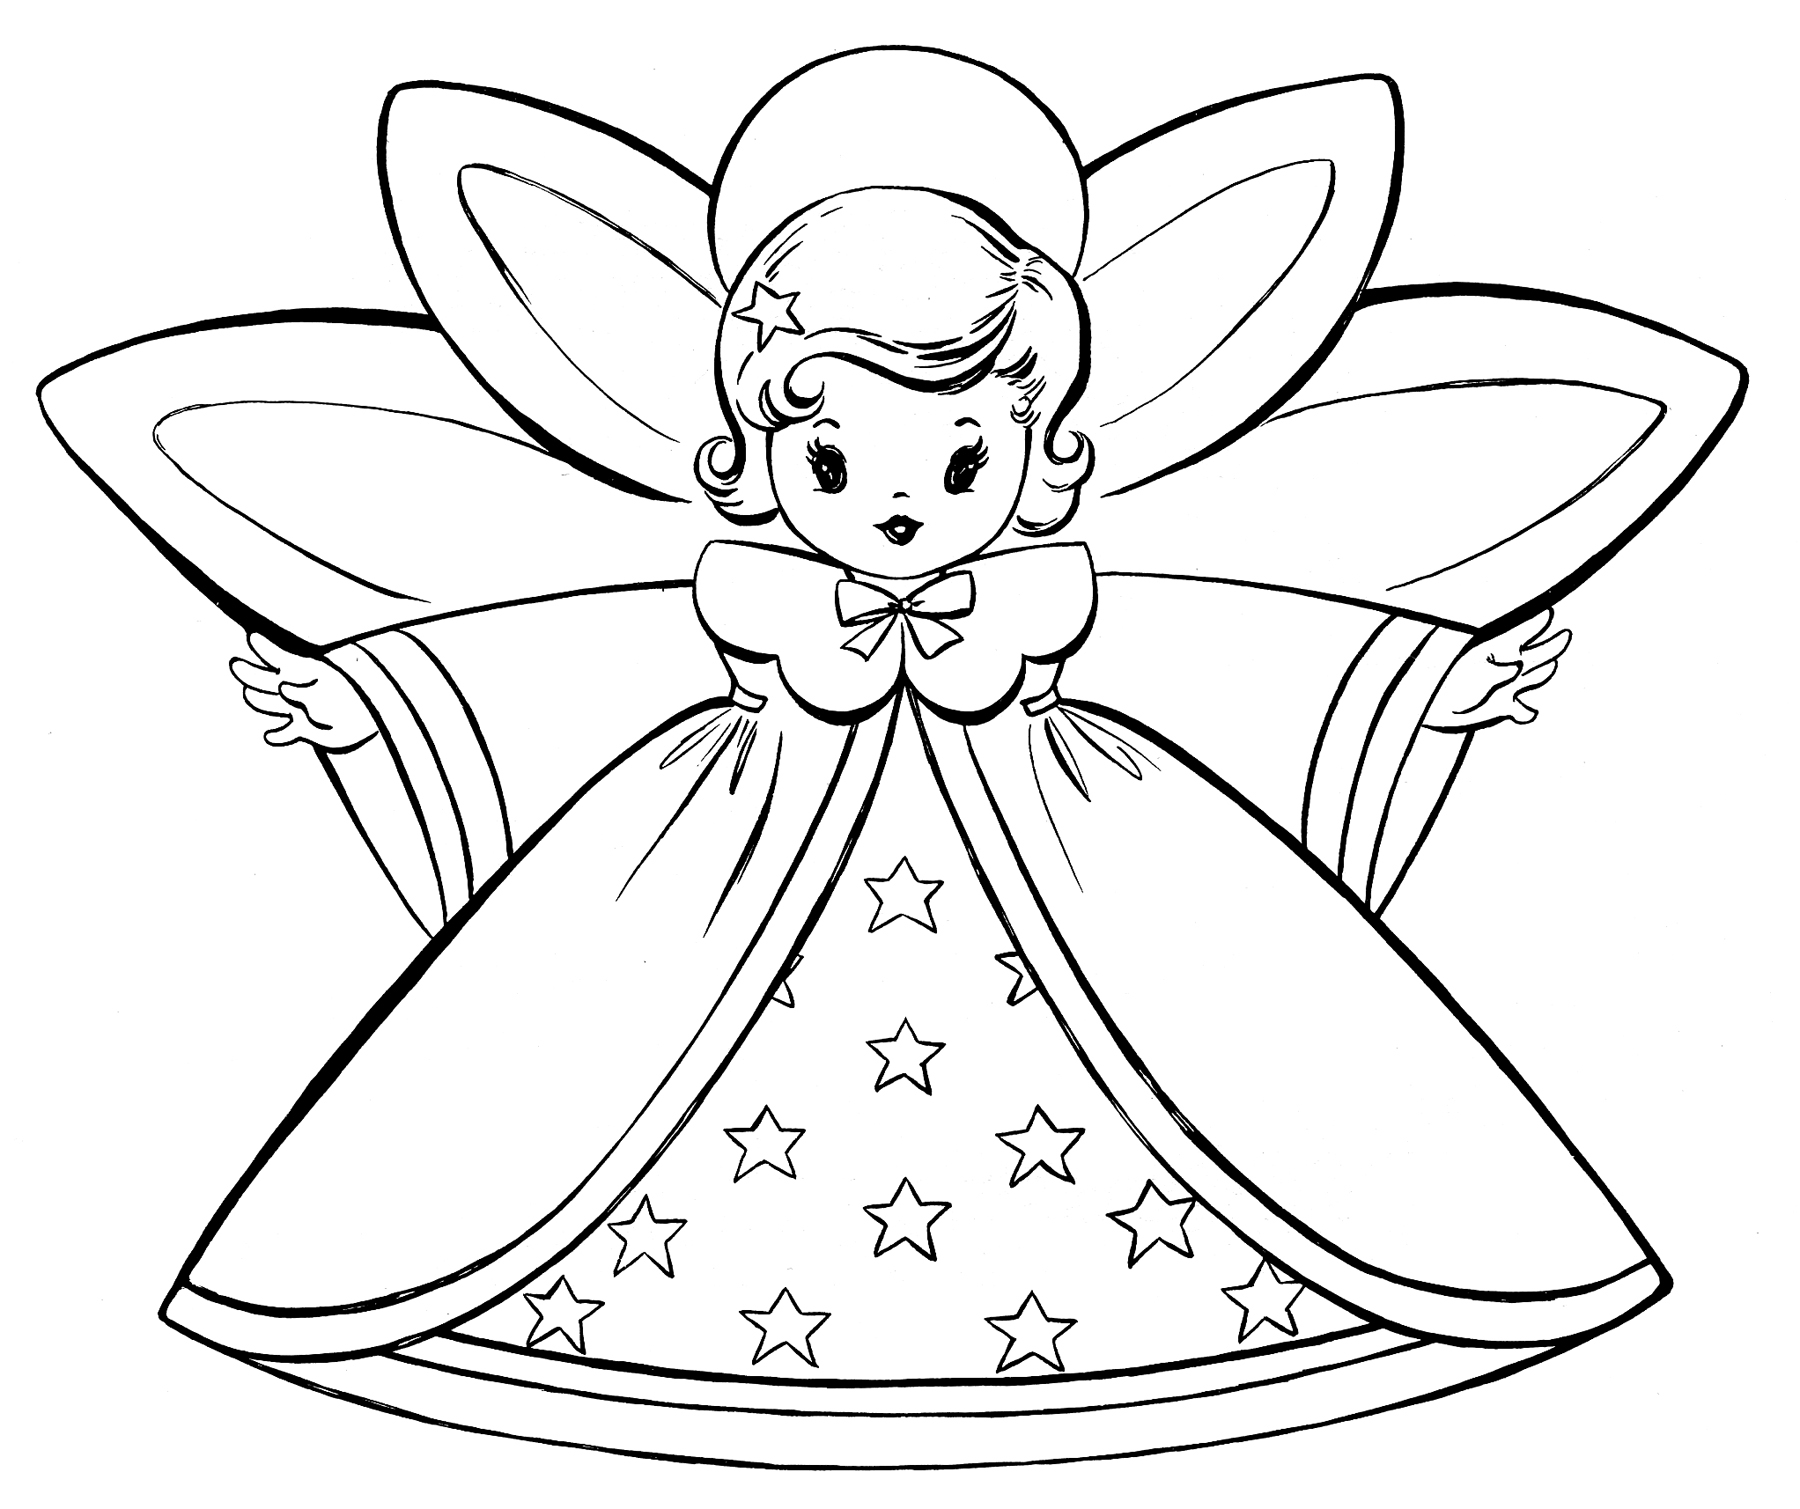 christmas coloring pages for preschoolers free christmas coloring pages retro angels the pages preschoolers for christmas coloring